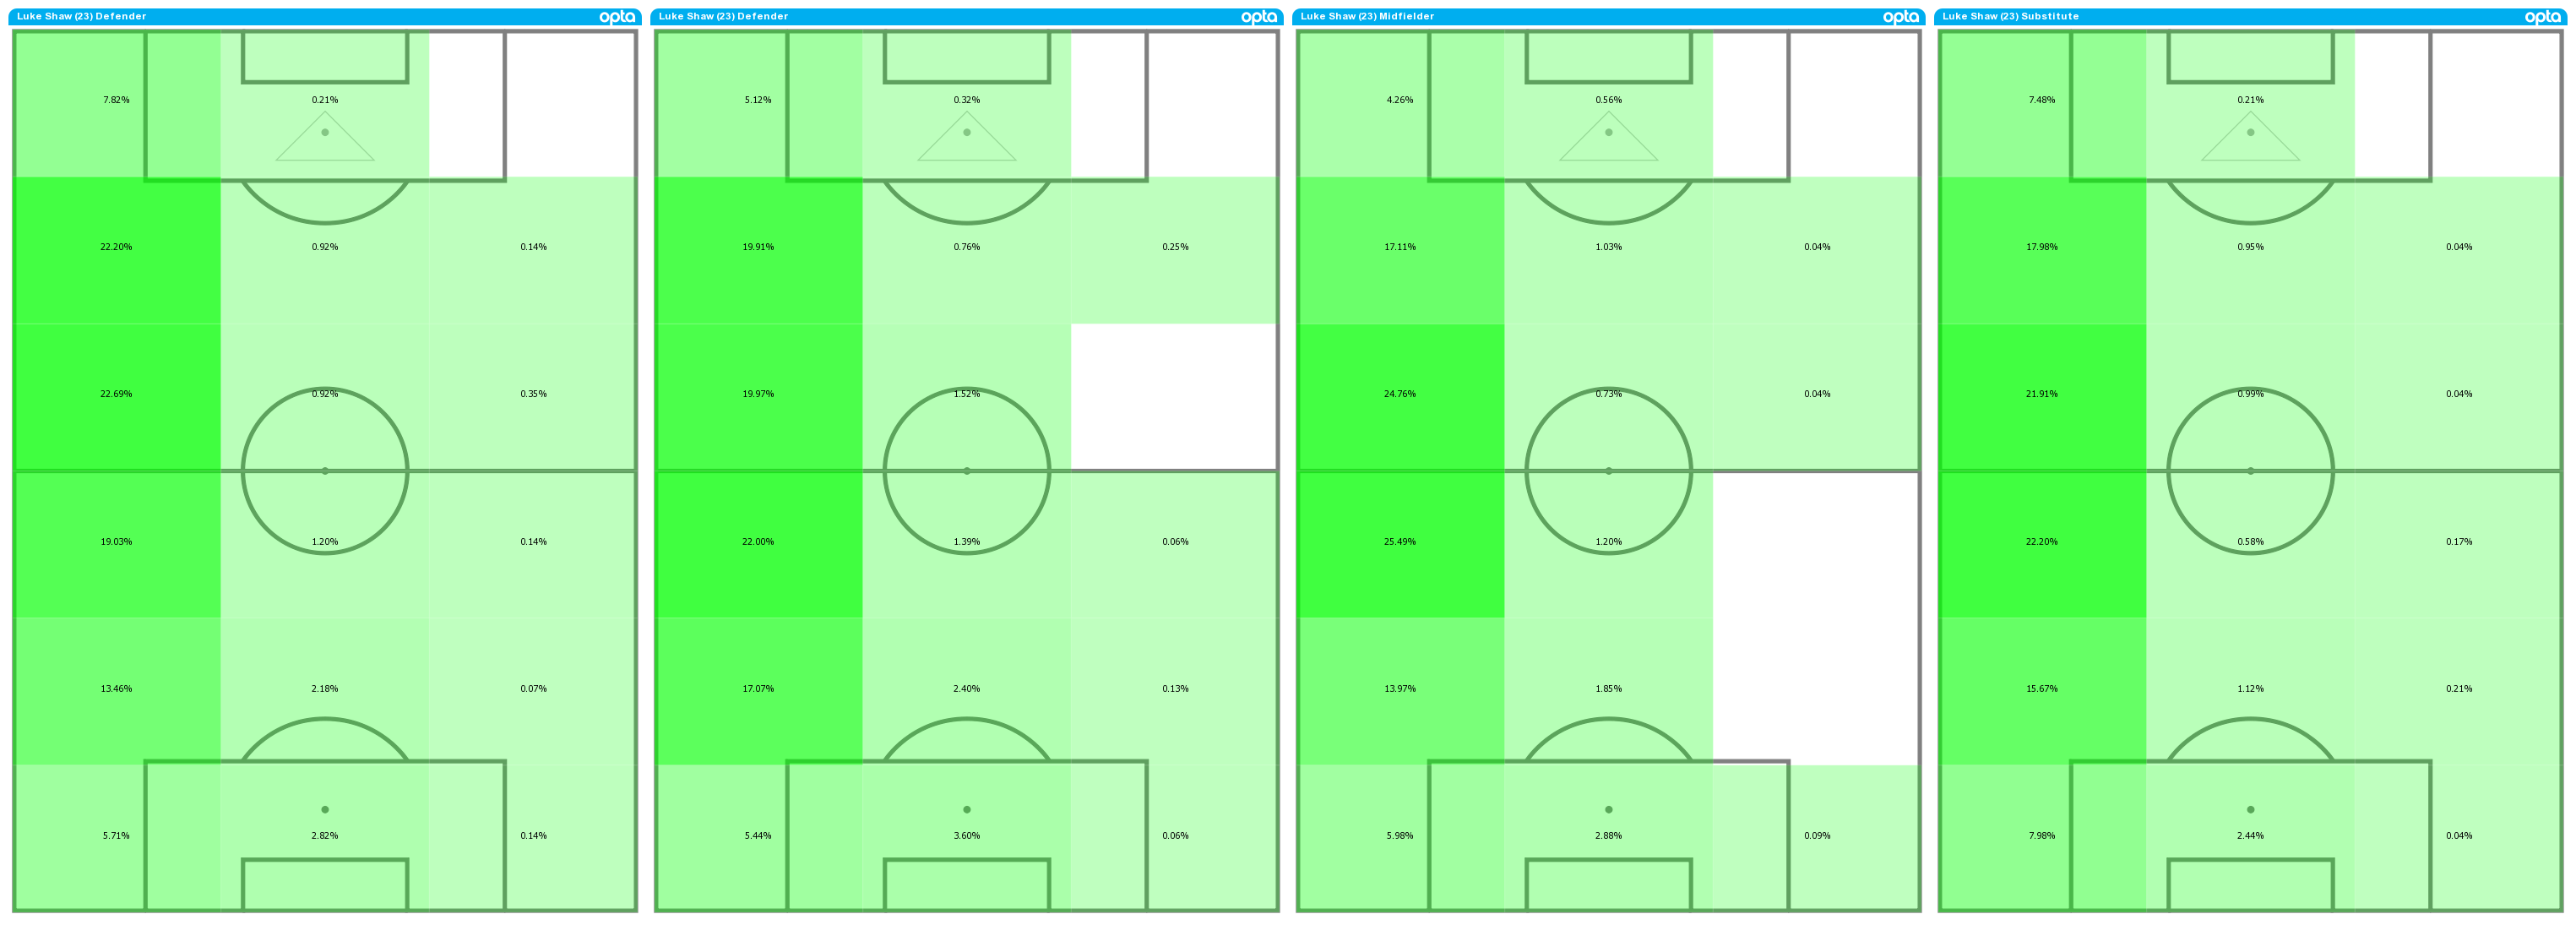 Luke Shaw's average position activity maps from 2020-21 (L), 2019-20 (LC), 2018-19 (RC) and 2013-14 (R)